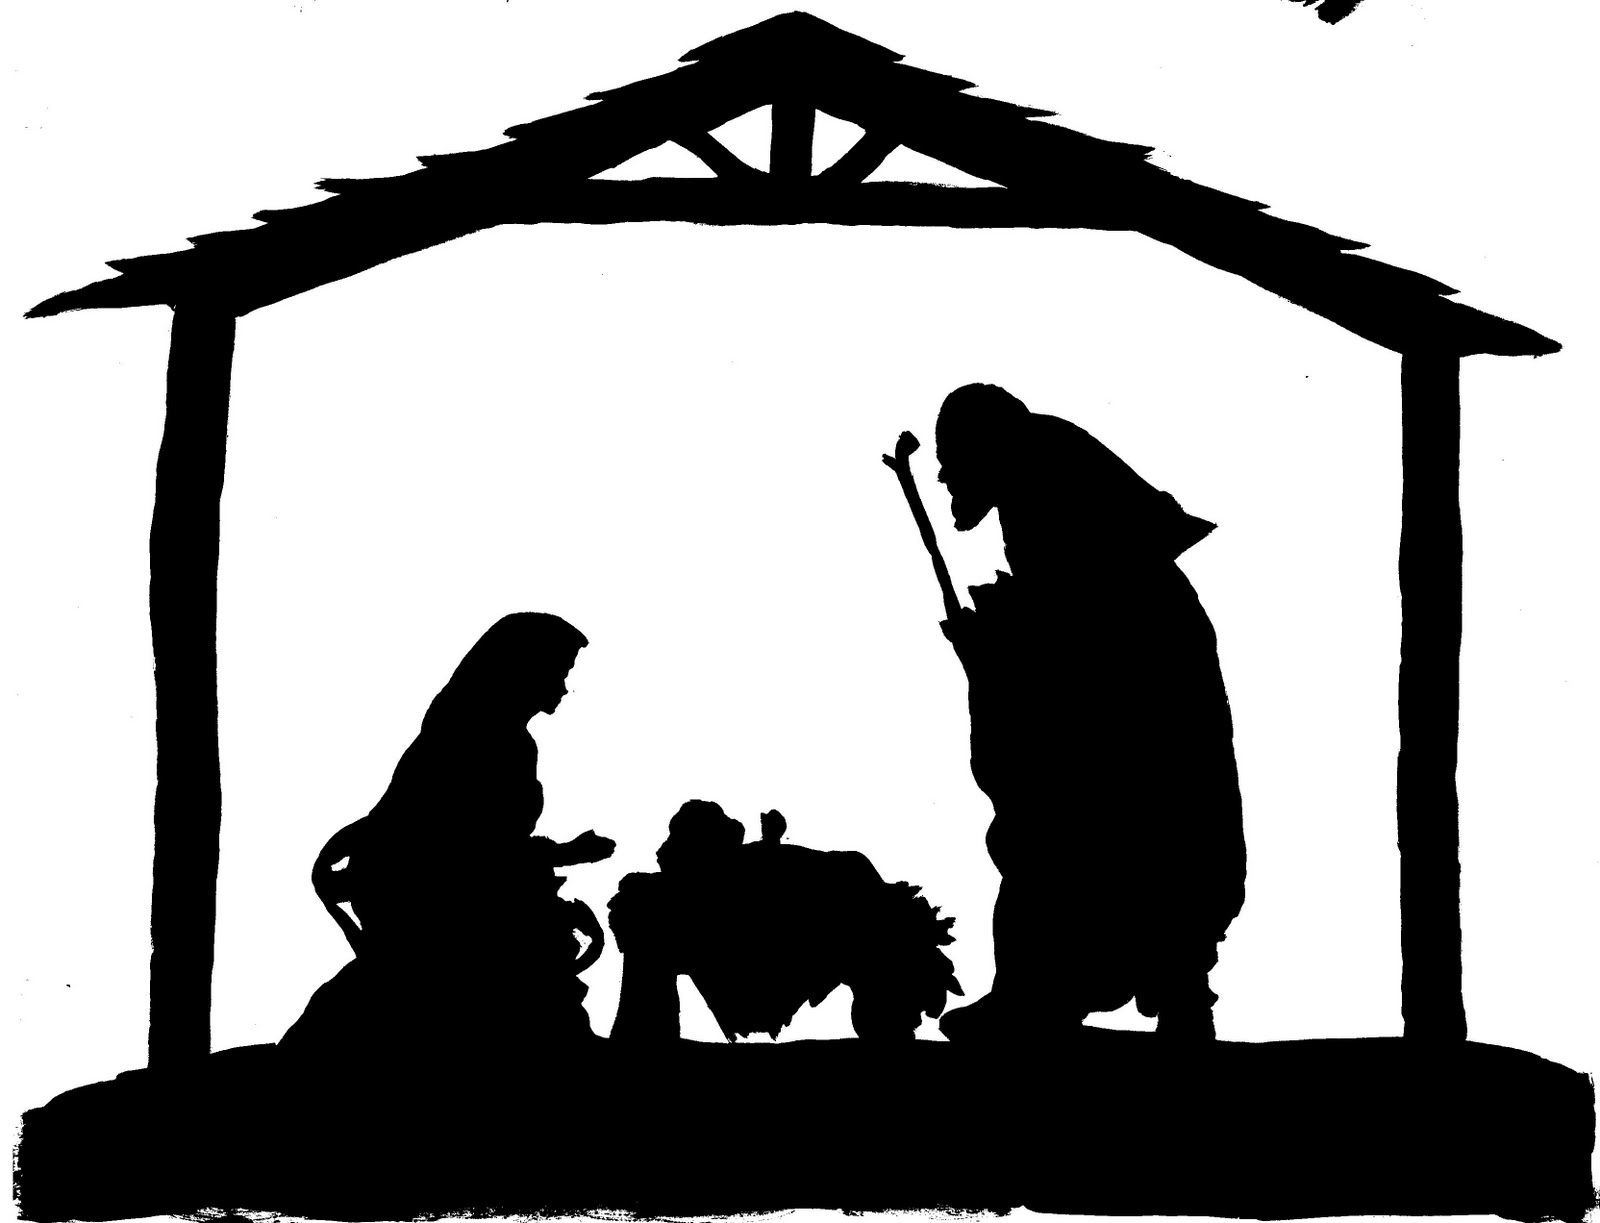 Nativity Silhouette Free Nativity Silhouette Clipart - Wikiclipart - Free Printable Nativity Silhouette